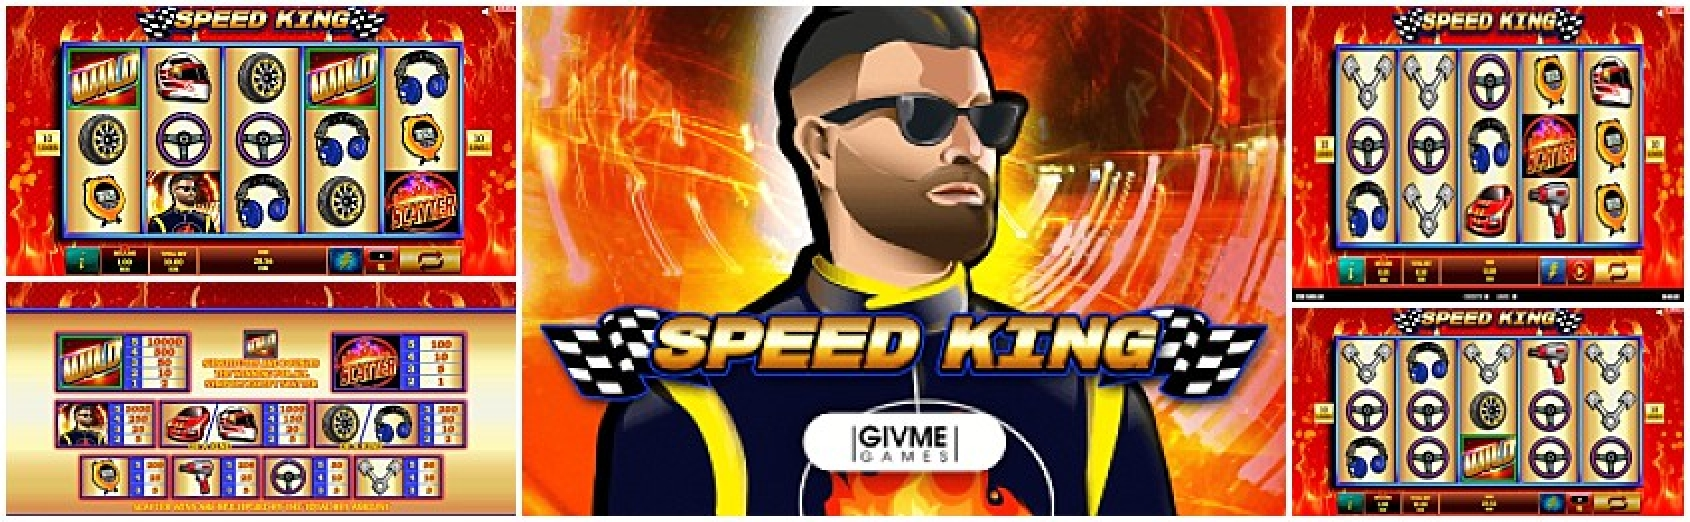 The Speed King Online Slot Demo Game by Givme Games